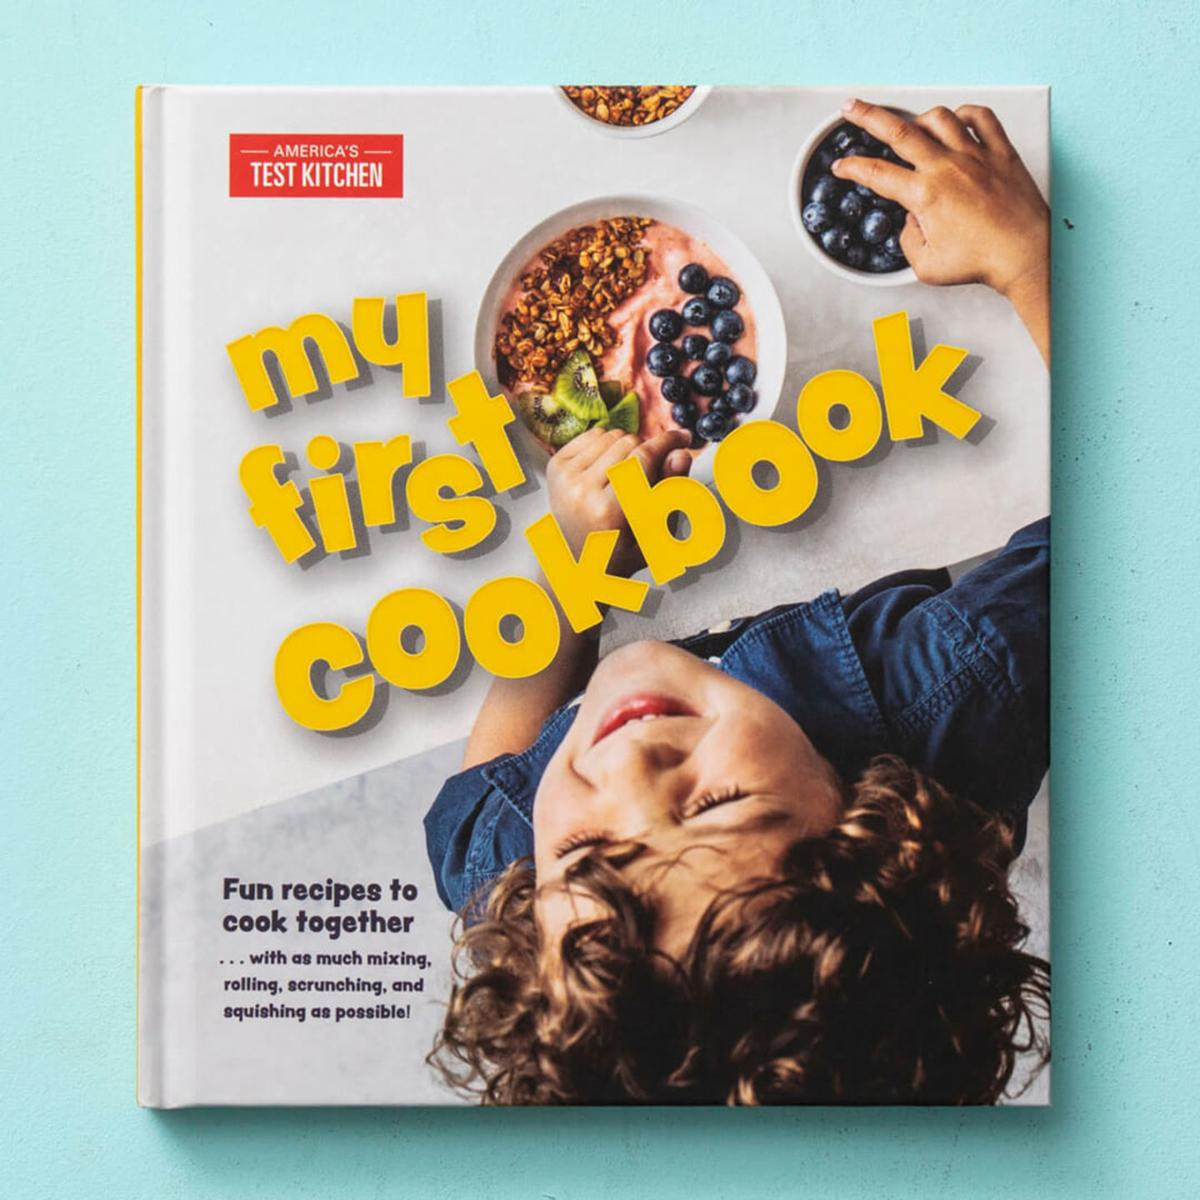 A tale of 2 cookbooks designed for children